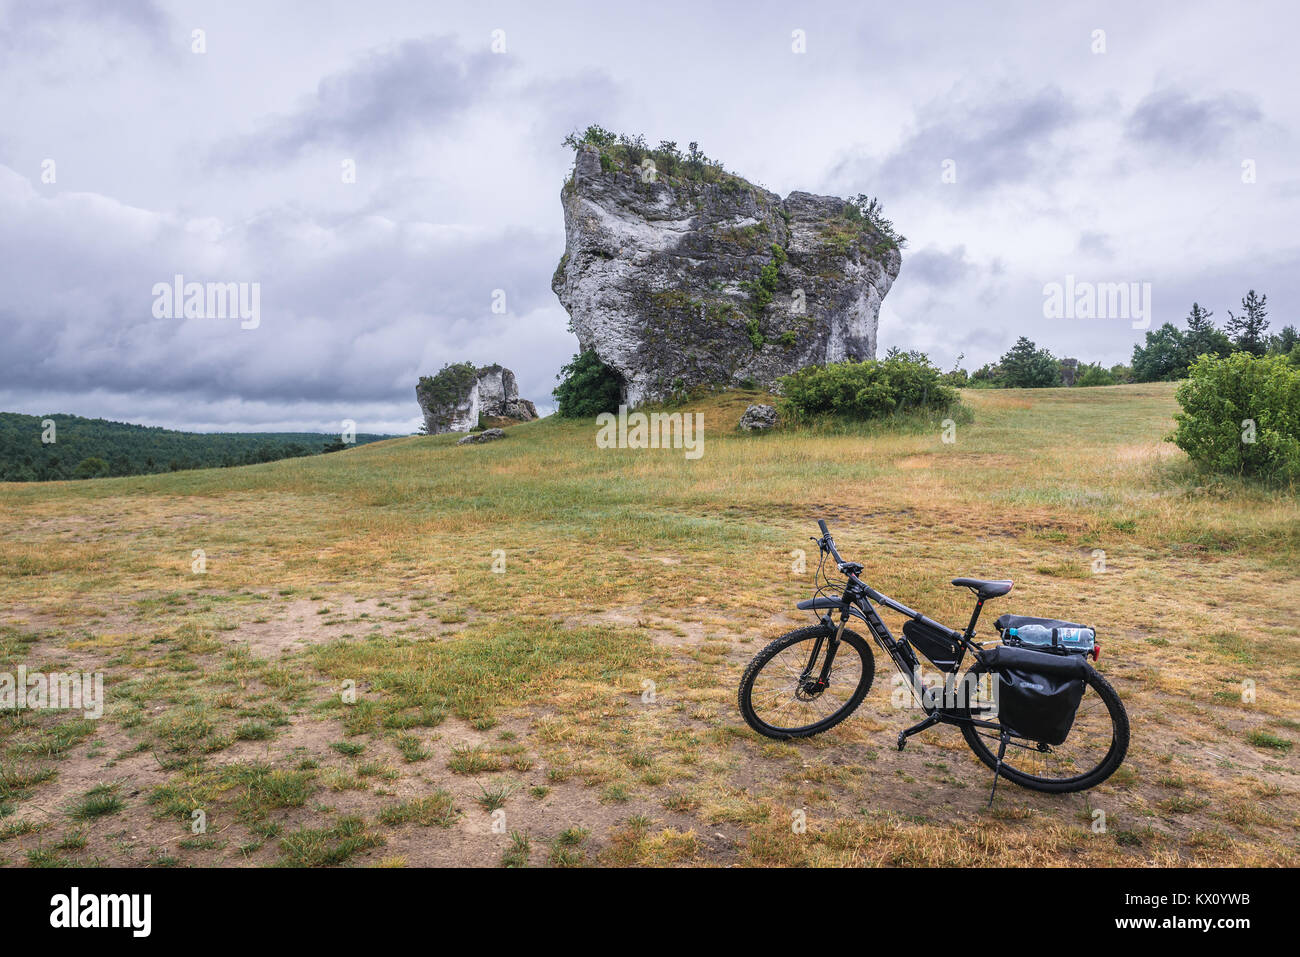 Large outlier rock next to castle in Mirow village, Polish Jura region in Silesian Voivodeship of southern Poland - Stock Image